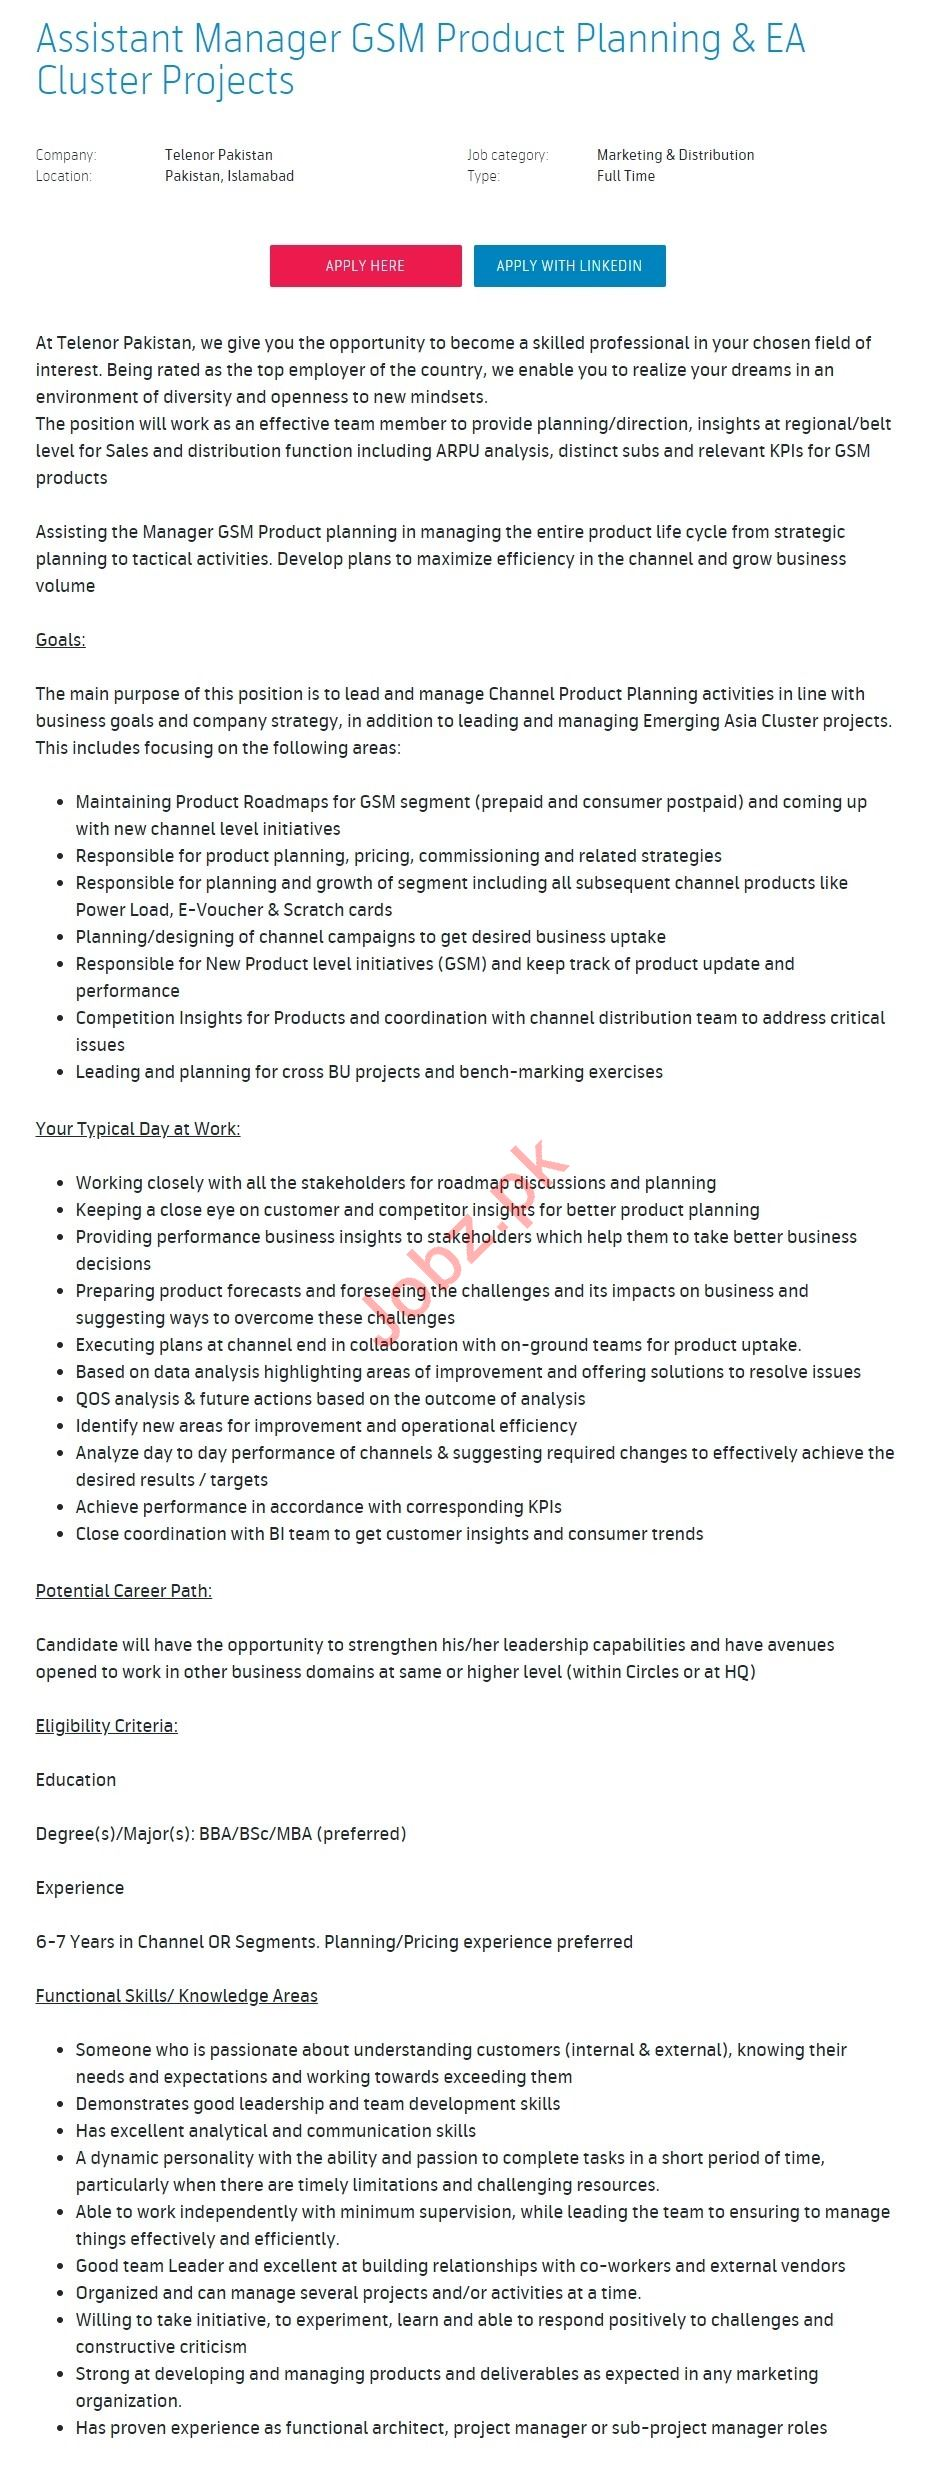 Assistant Manager GSM Product Planning Jobs 2019